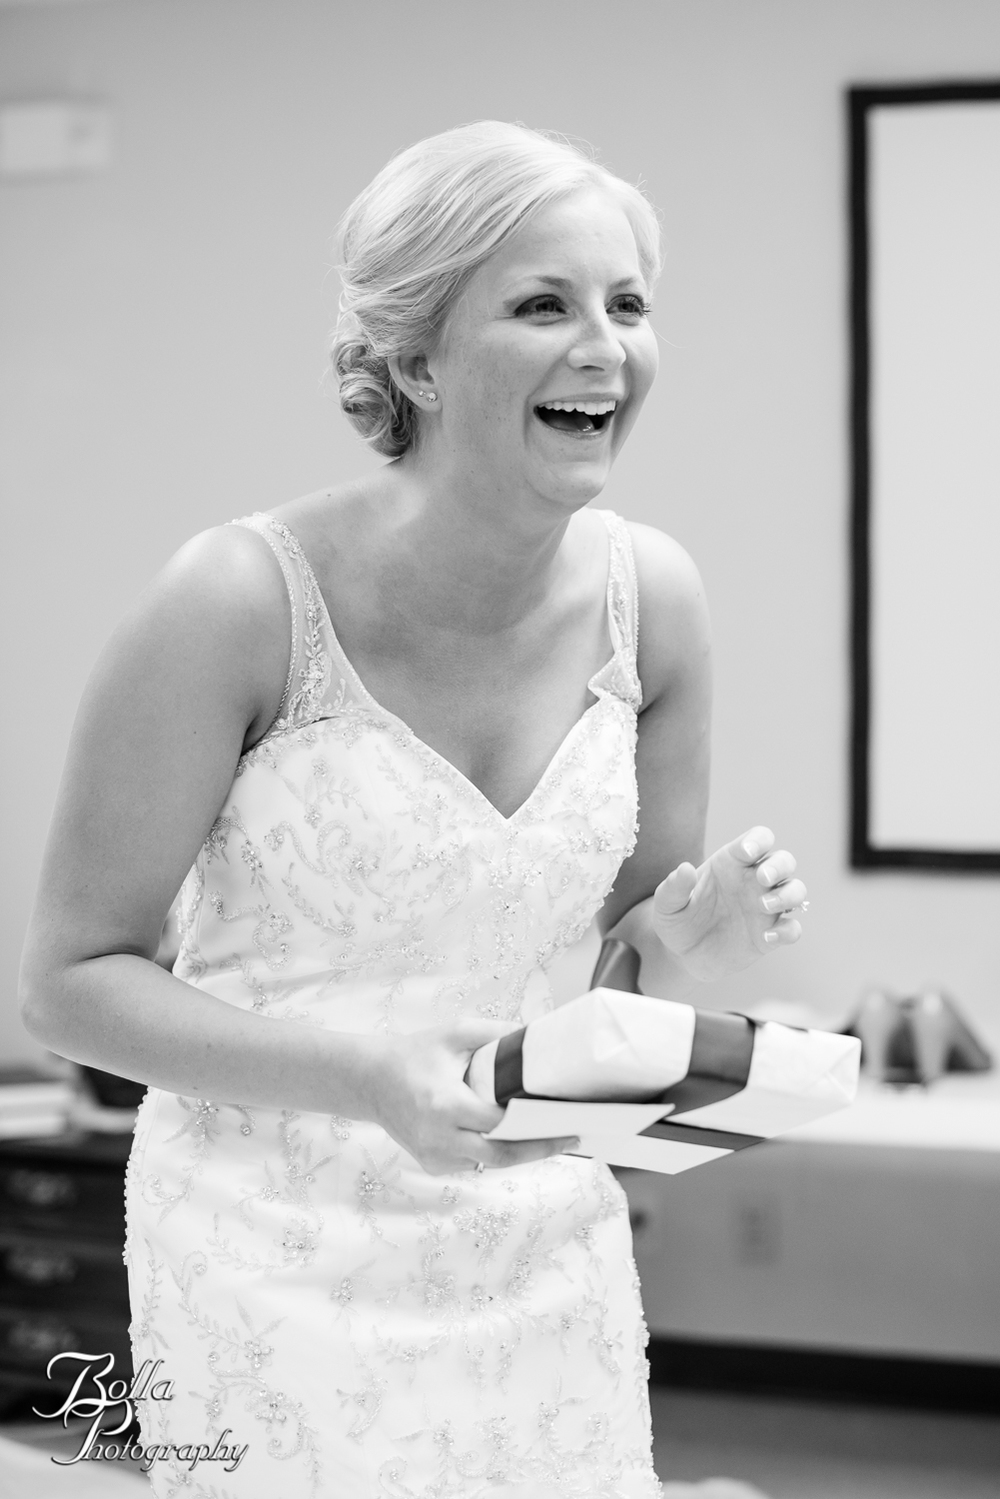 Bolla_Photography_St_Louis_wedding_photographer_Edwardsville_Highland-0075.jpg